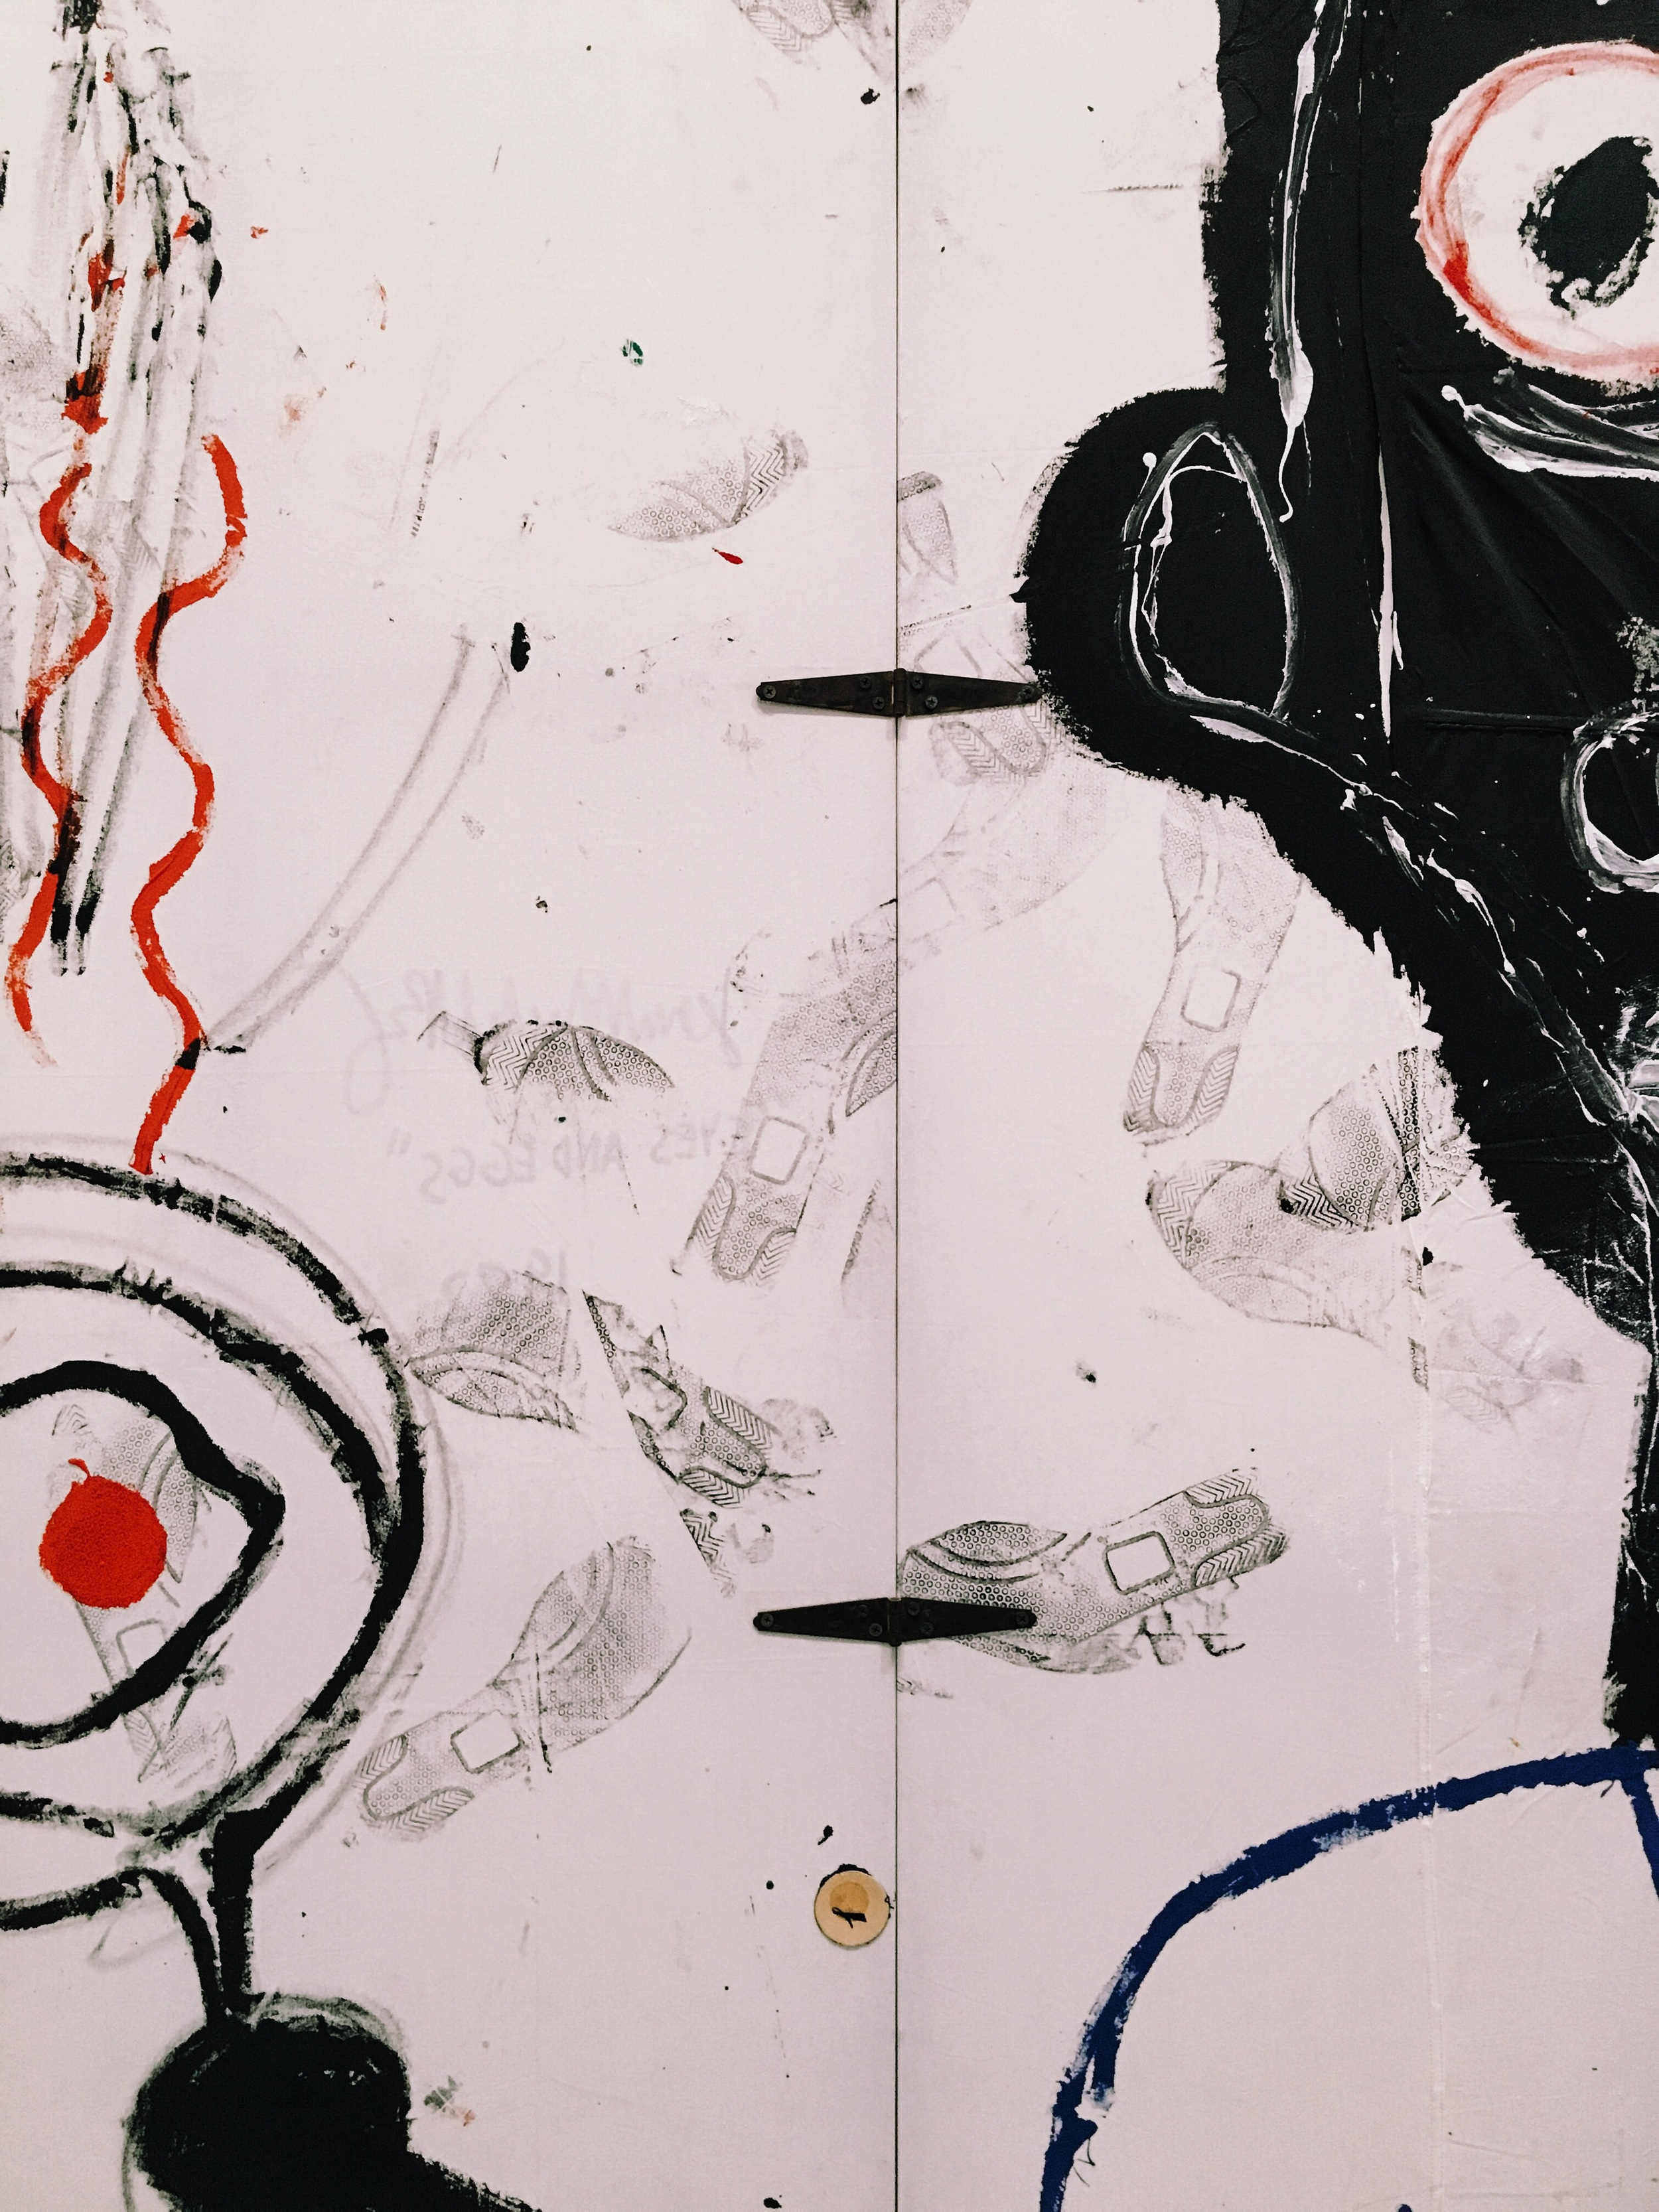 cool detail from a Basquiat i had only seen in books